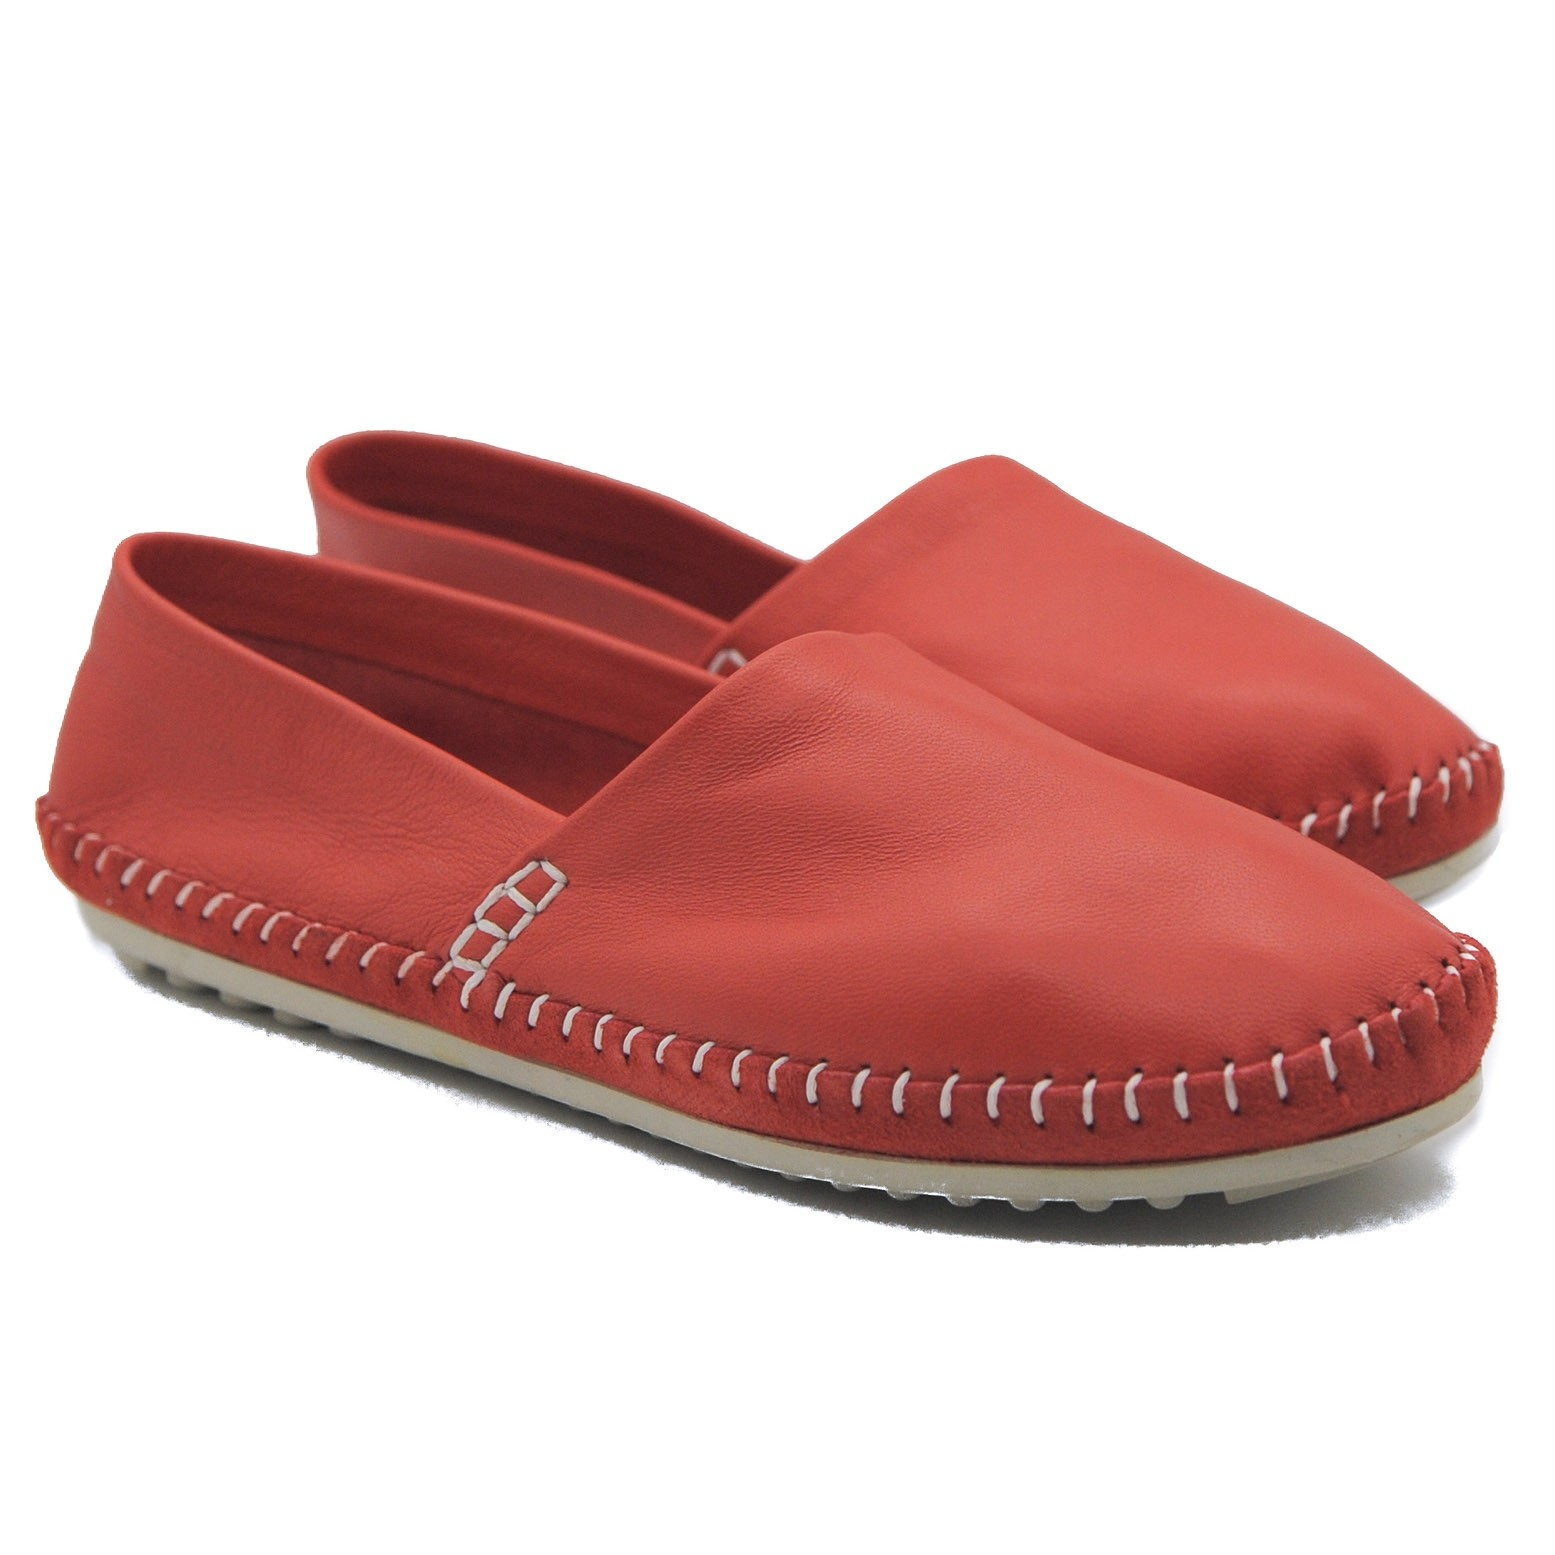 Art Goya Ladies' Soft Leather Rose Red Flat Slip on Comfort Summer Shoes